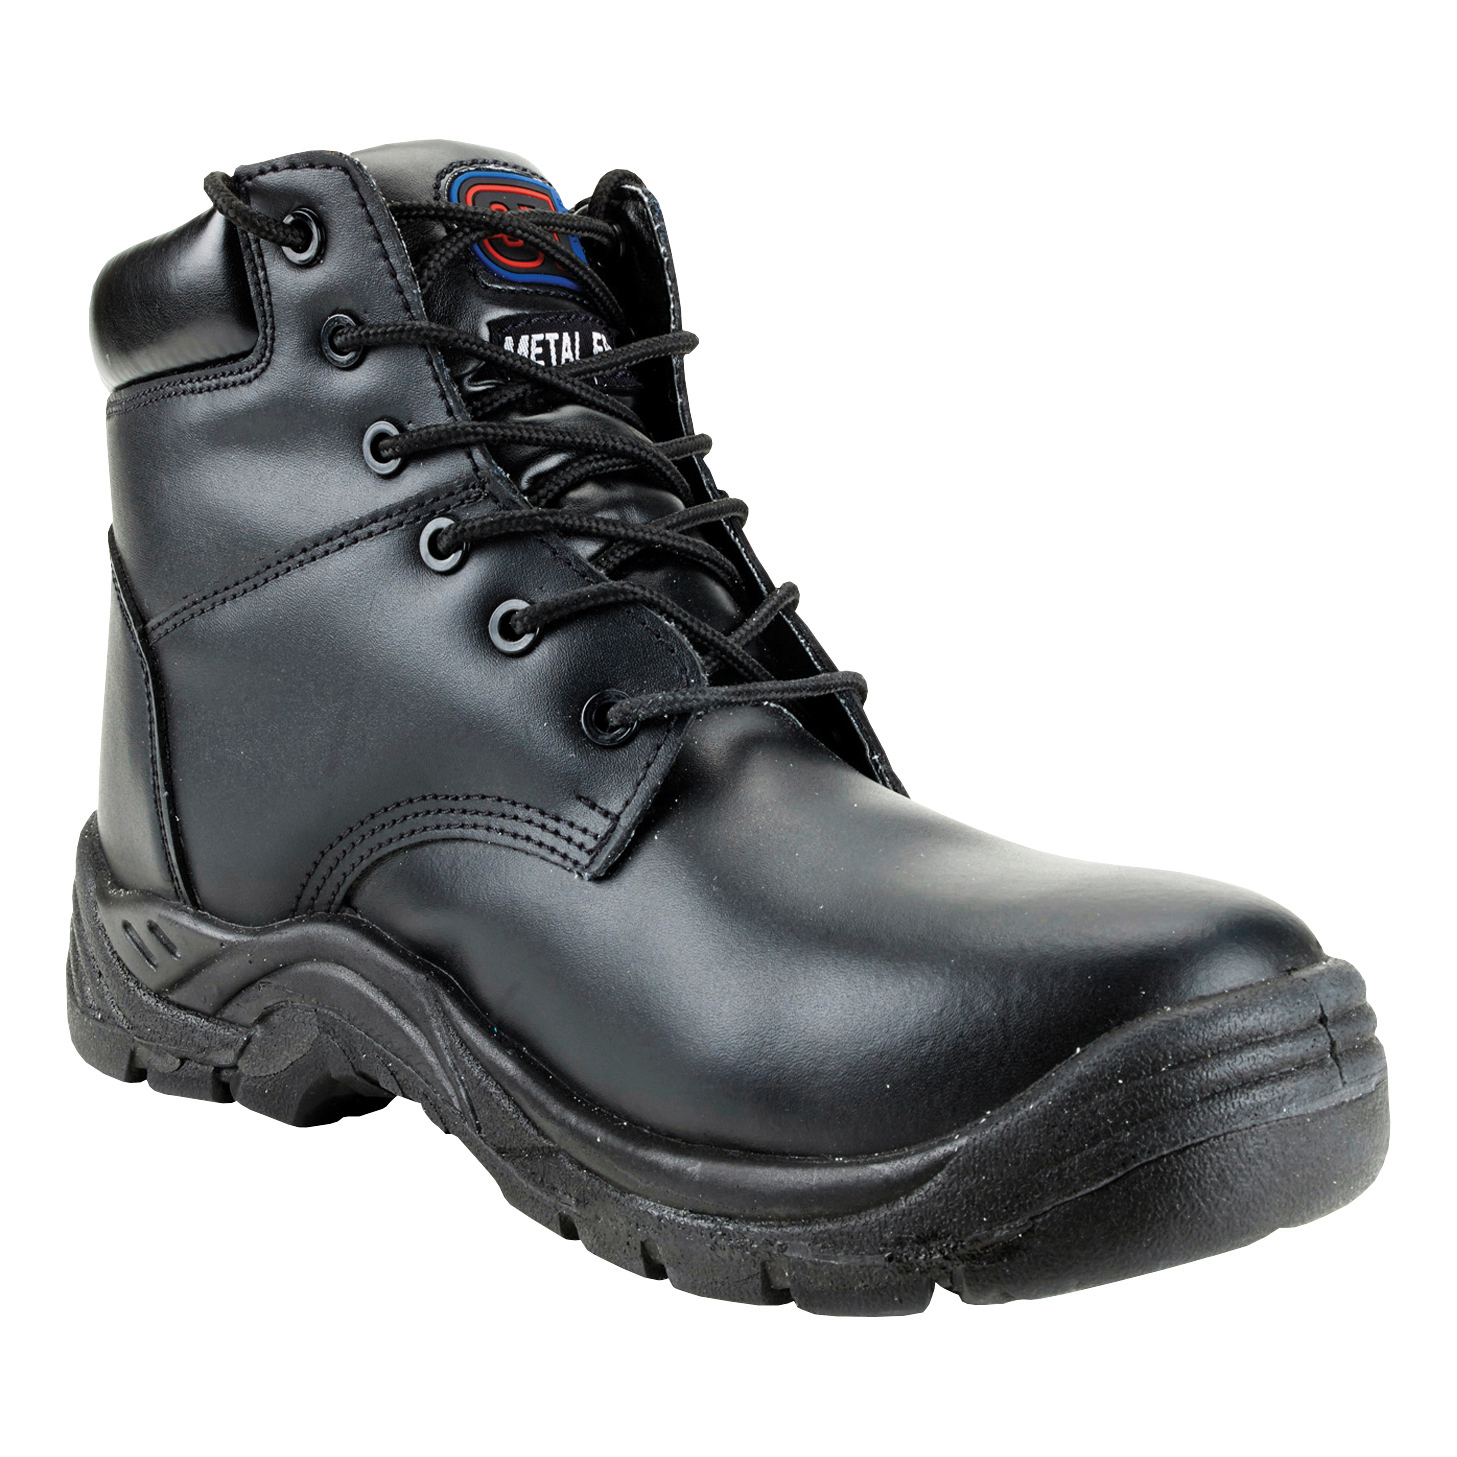 ST Toe Lite Boot Leather Comp' Midsole Safety Toecap Metal Free sze 5 Blk Ref 90170 *Approx 3 Day L/Time*